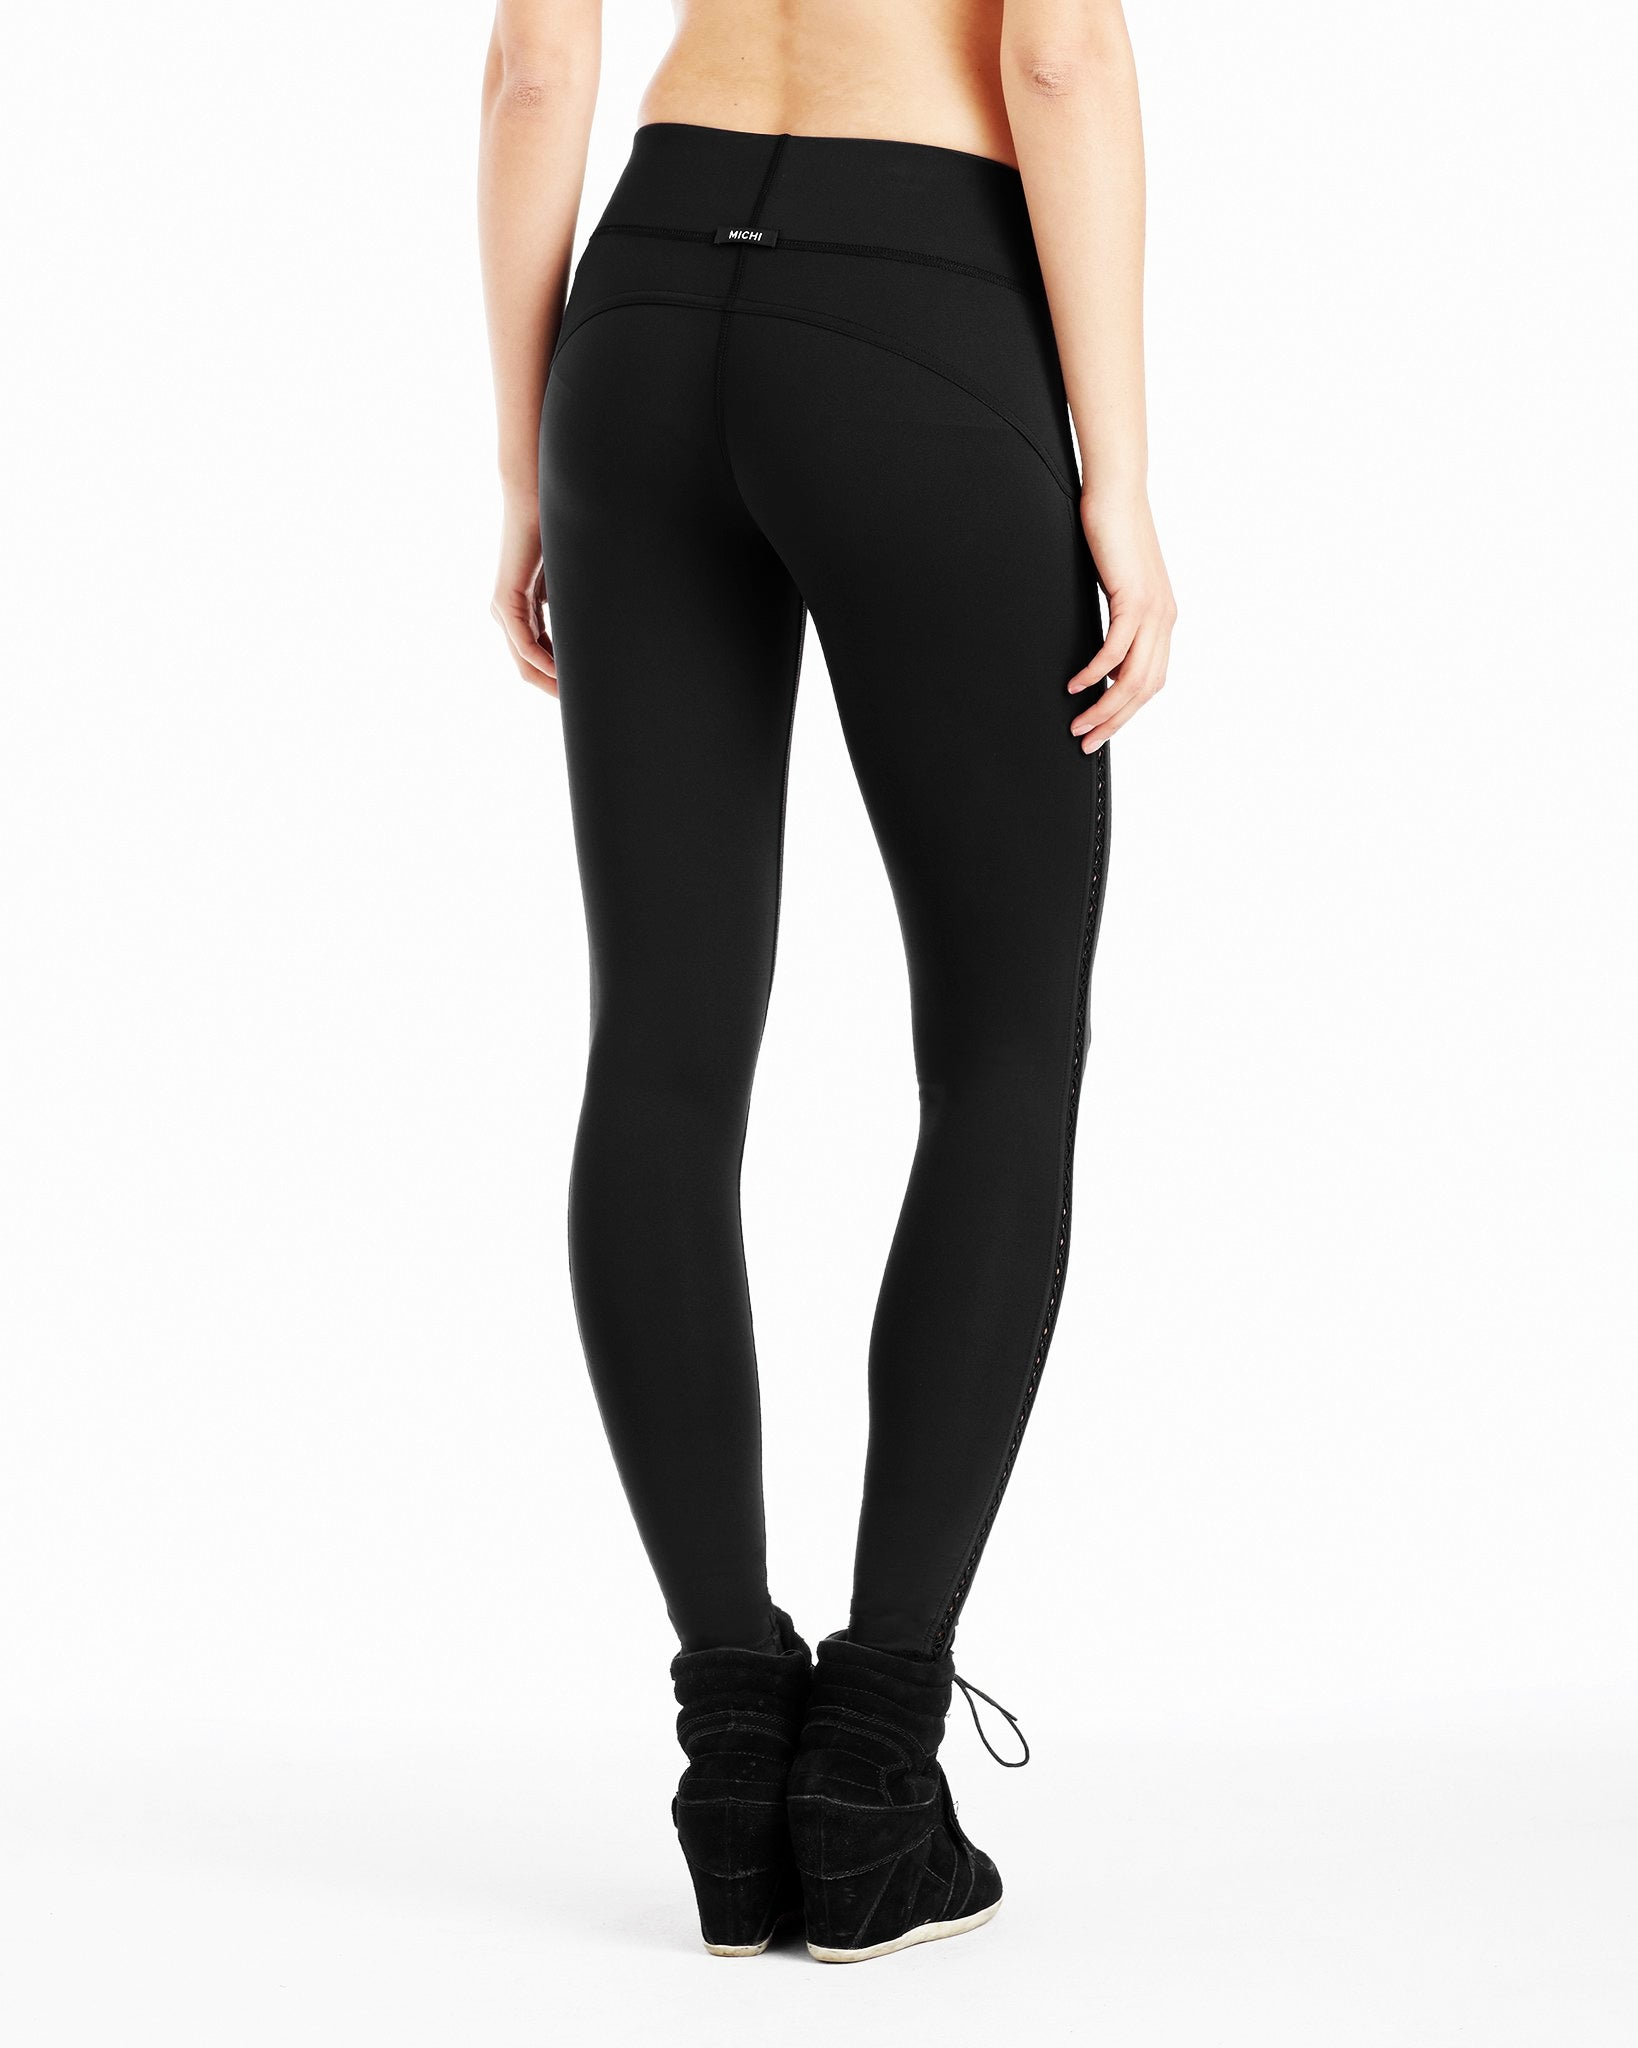 Pipeline Legging - Black